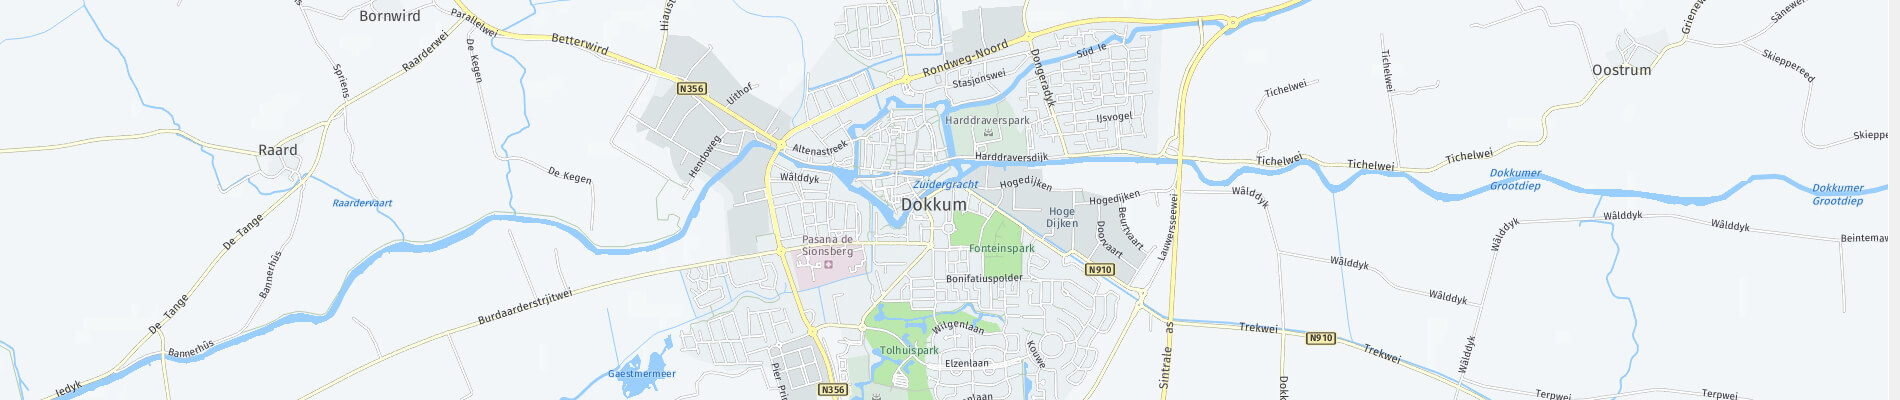 assets/images/cities/dokkum.jpg